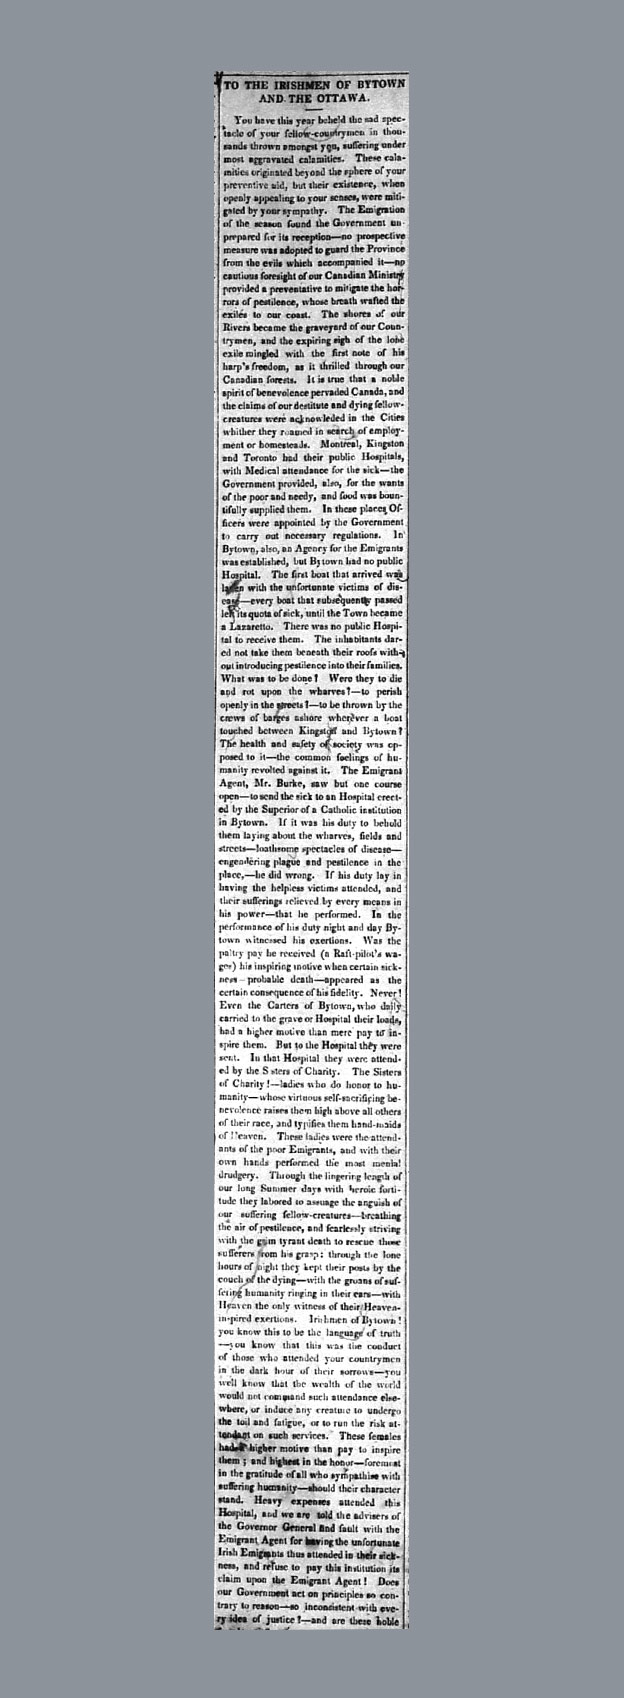 Irishmen of Bytown article in the Packet newspaper (18 December, 1847)